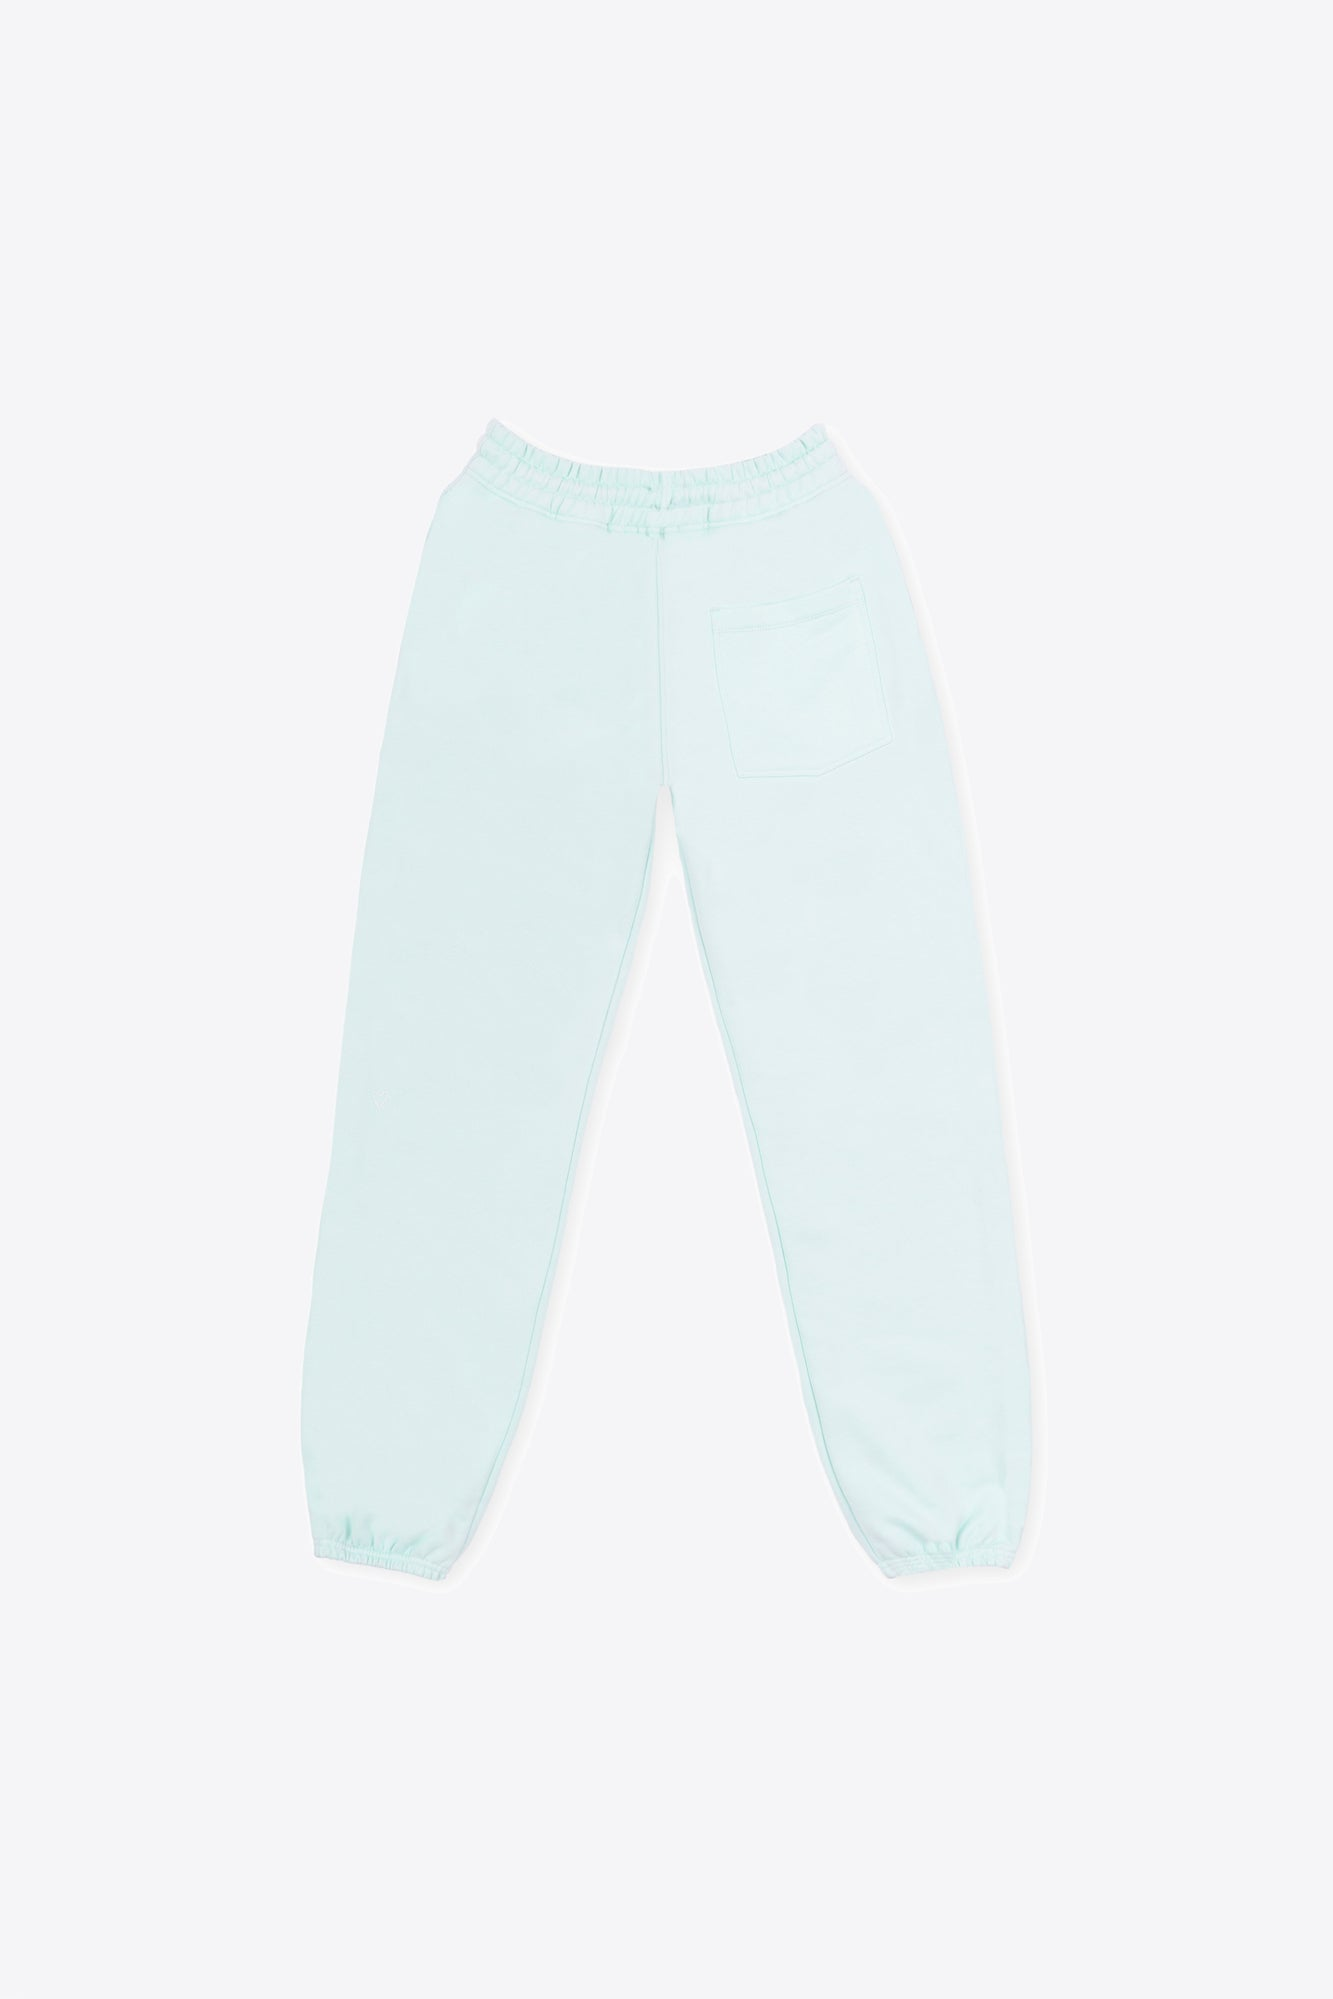 Mint Peace & Pow(HER) Sweatpants